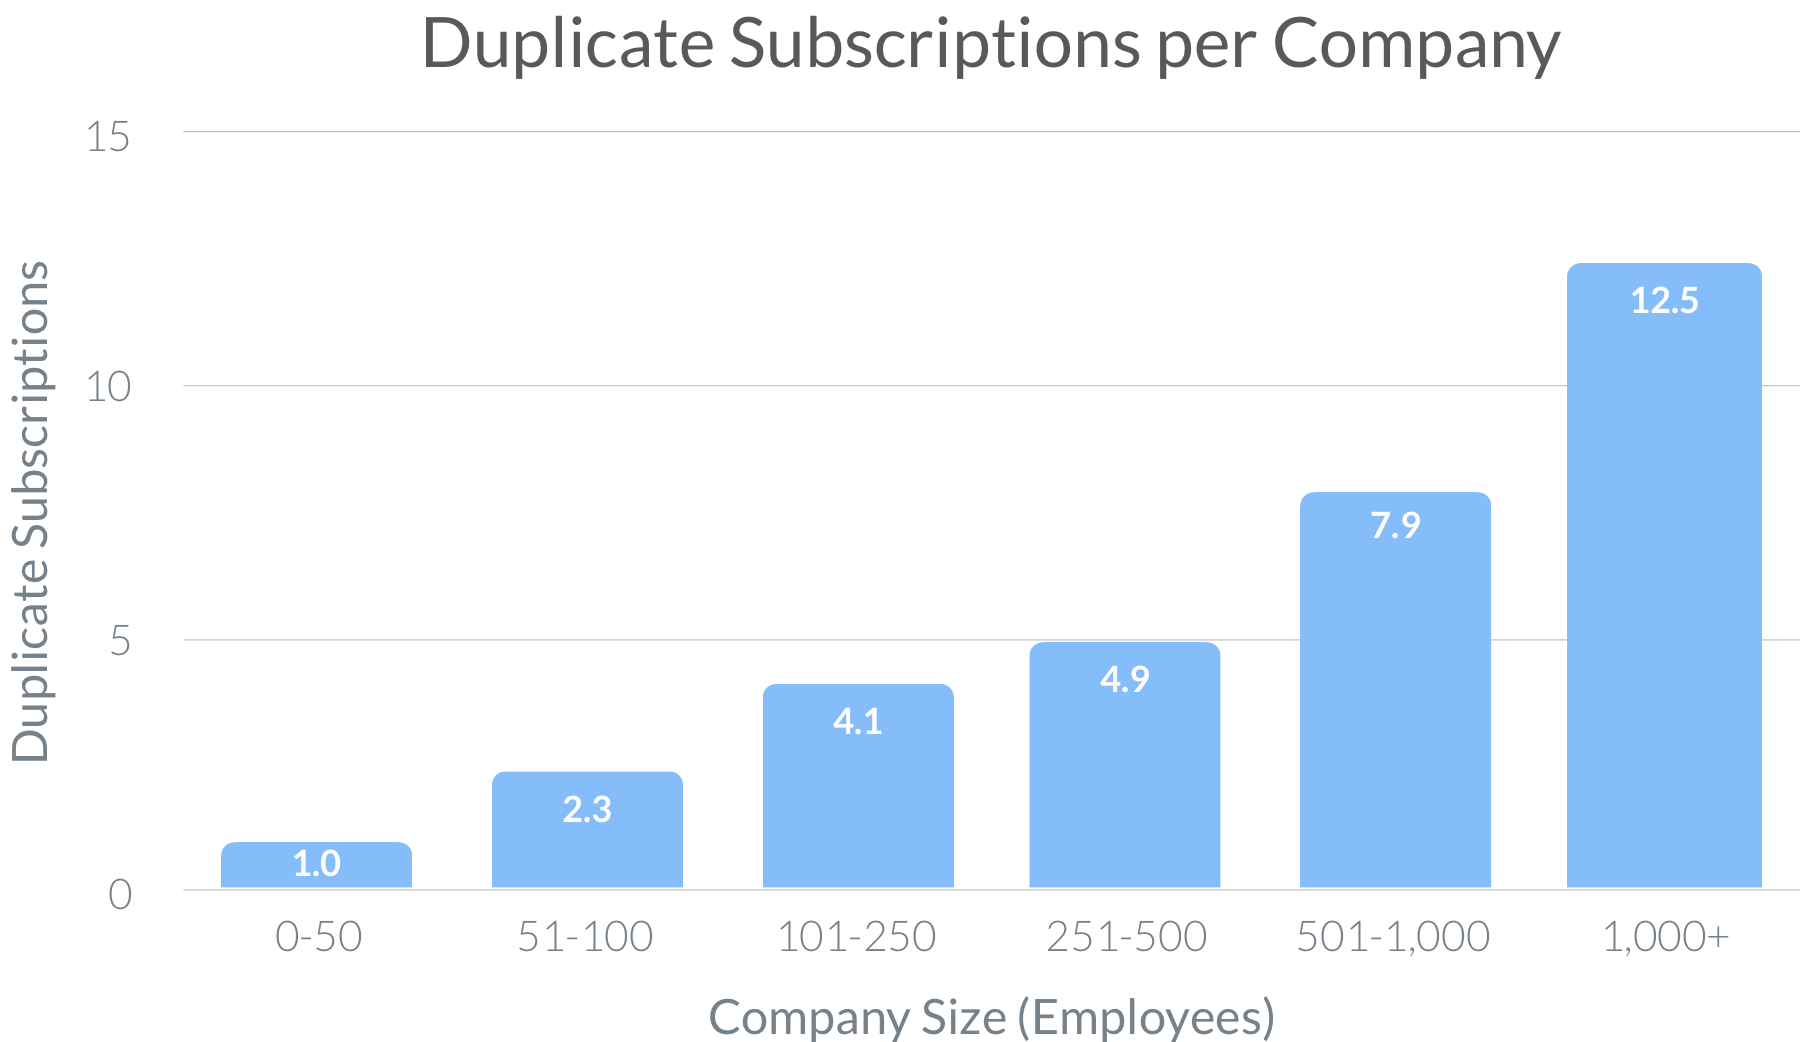 Duplicate Subscriptions per Company